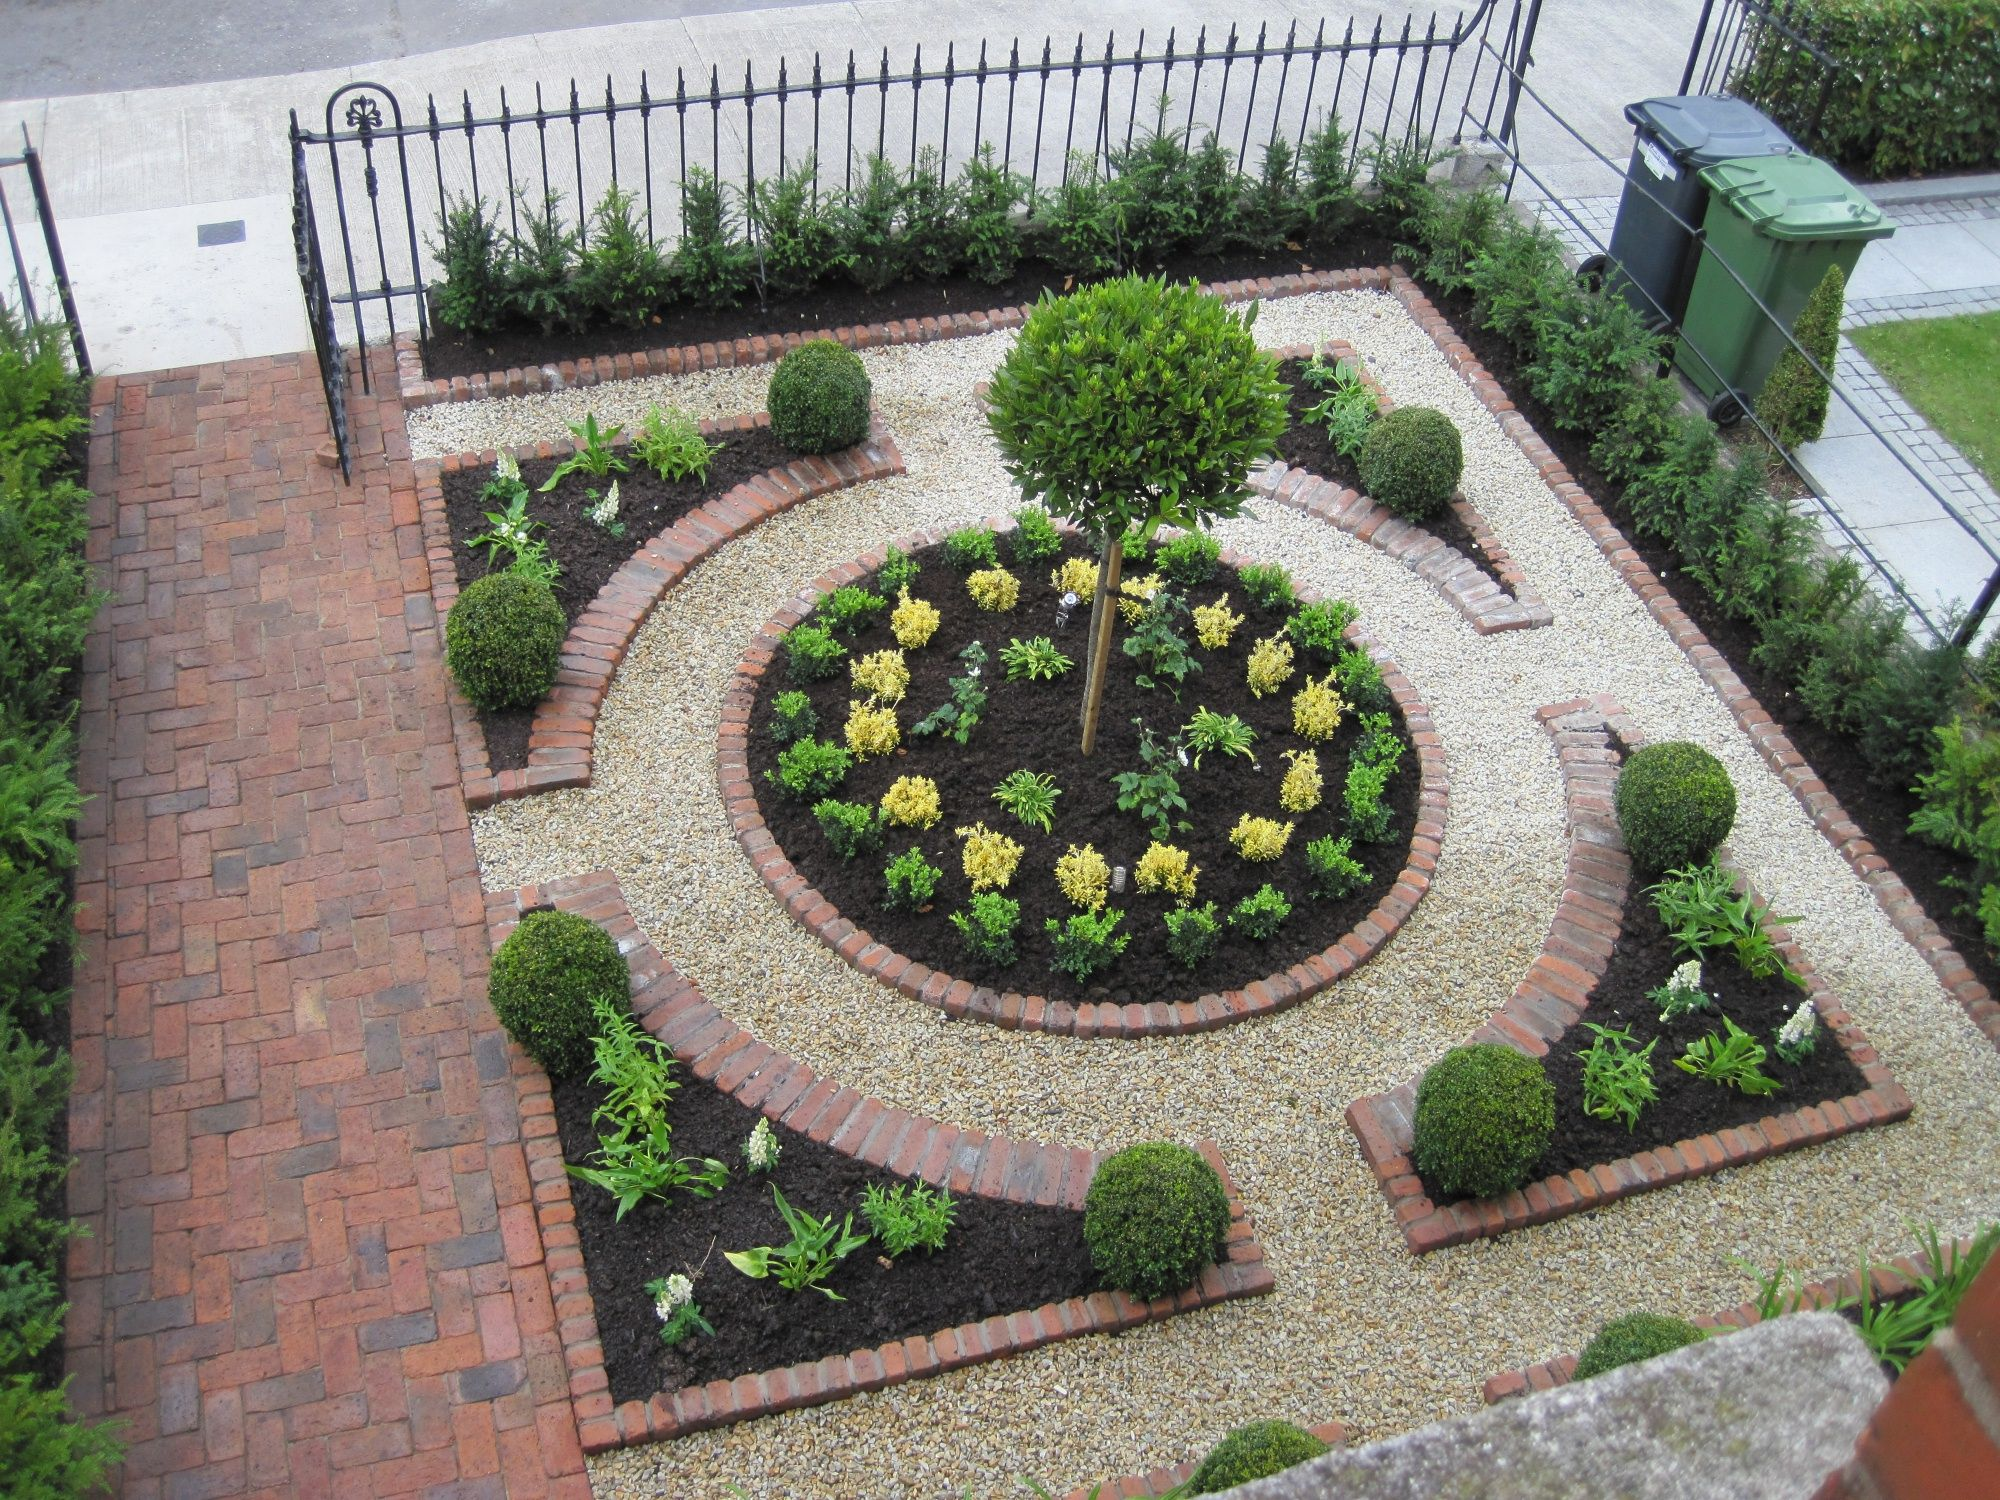 Form al parterred for a front garden landscaping decks for Small front garden ideas